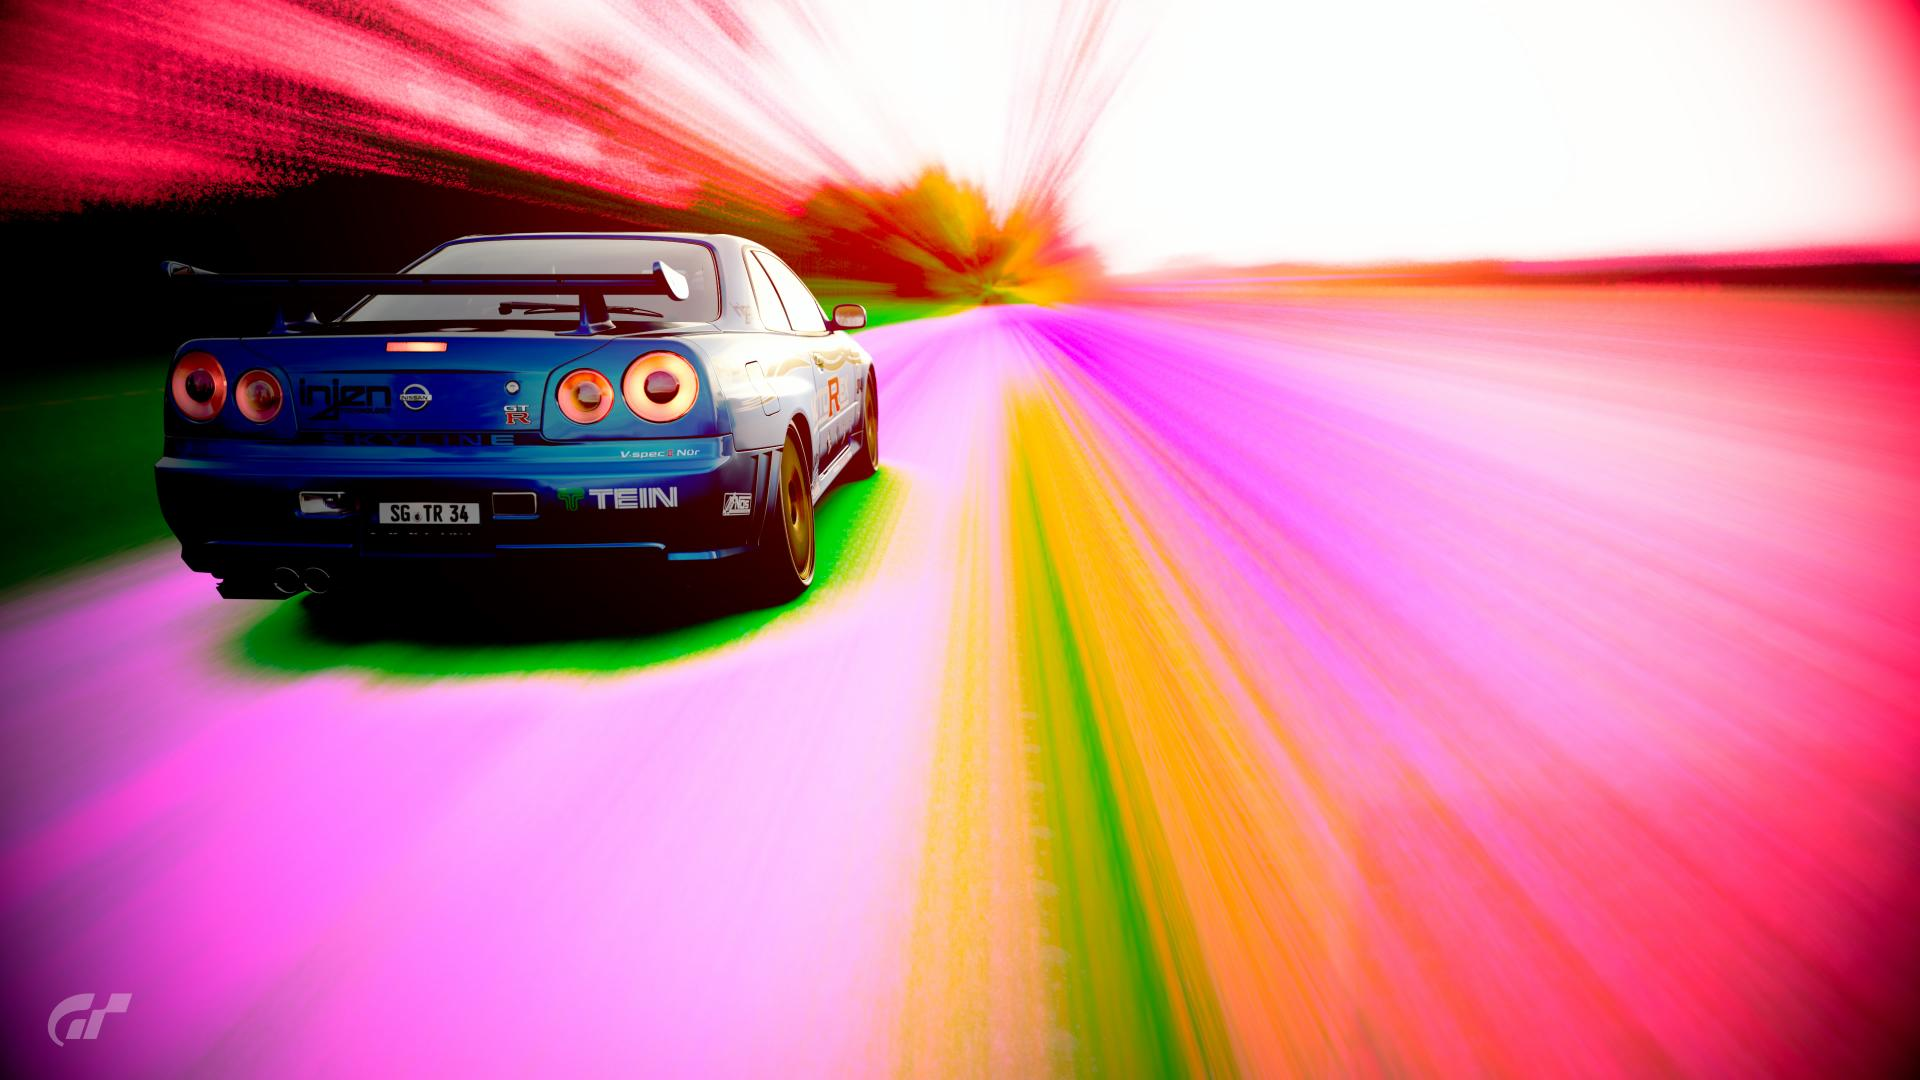 R34 GT R V spec II Nür 02 Scapes s by ShiverGTR34